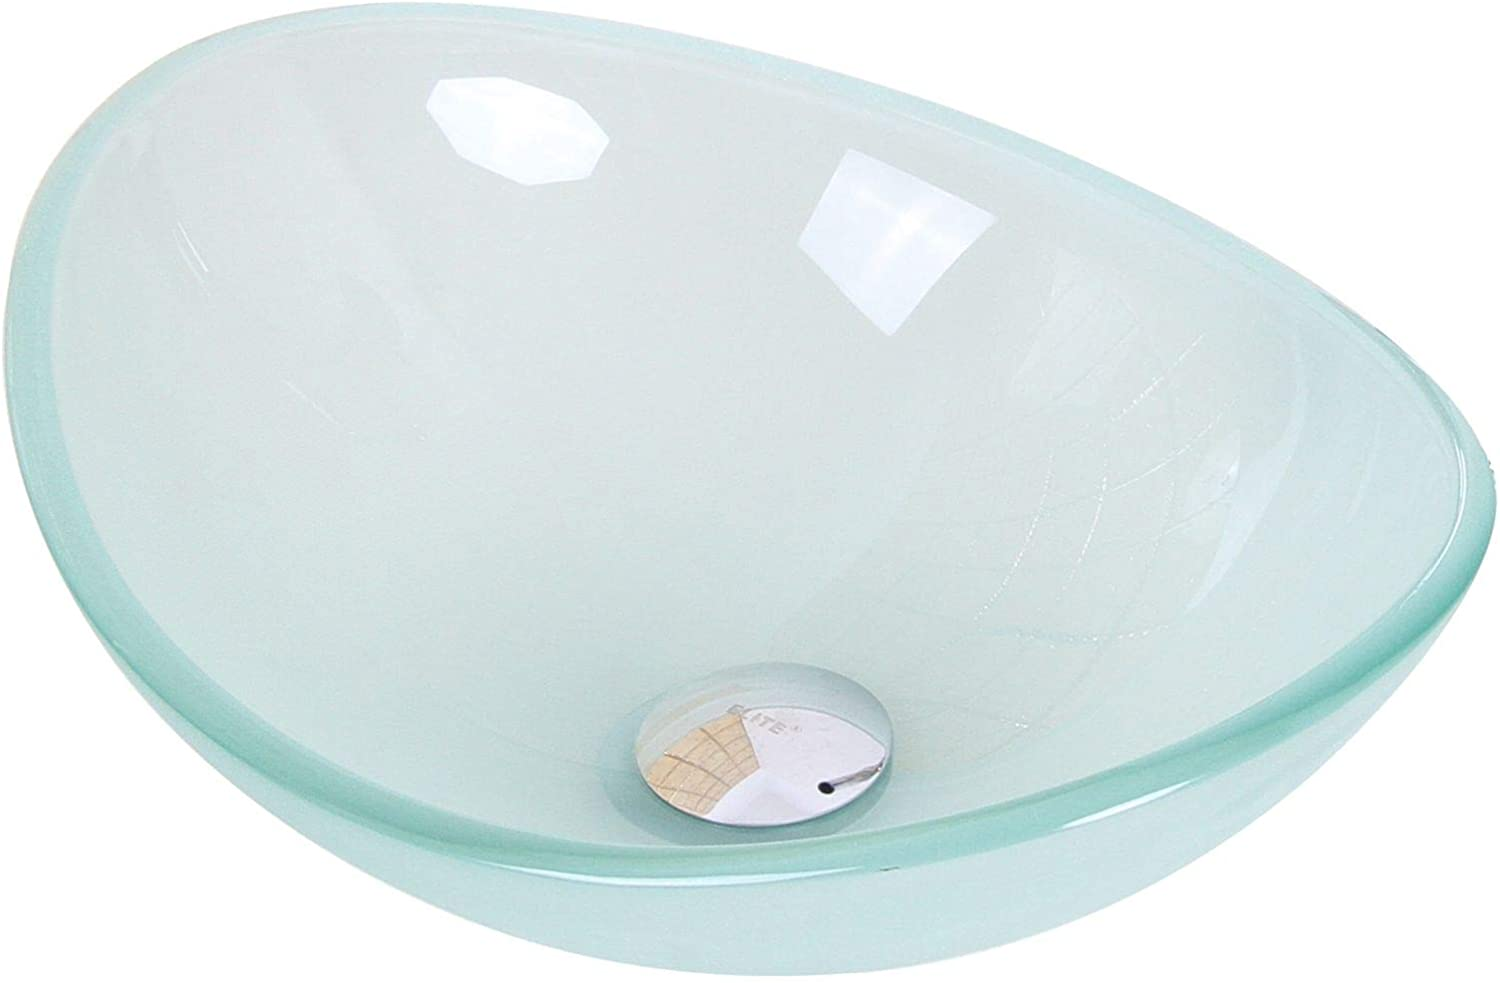 Mini Tempered Glass Boat Shaped Oval Bowl Bottom Vessel Bathroom Sink Sink Finish Frosted